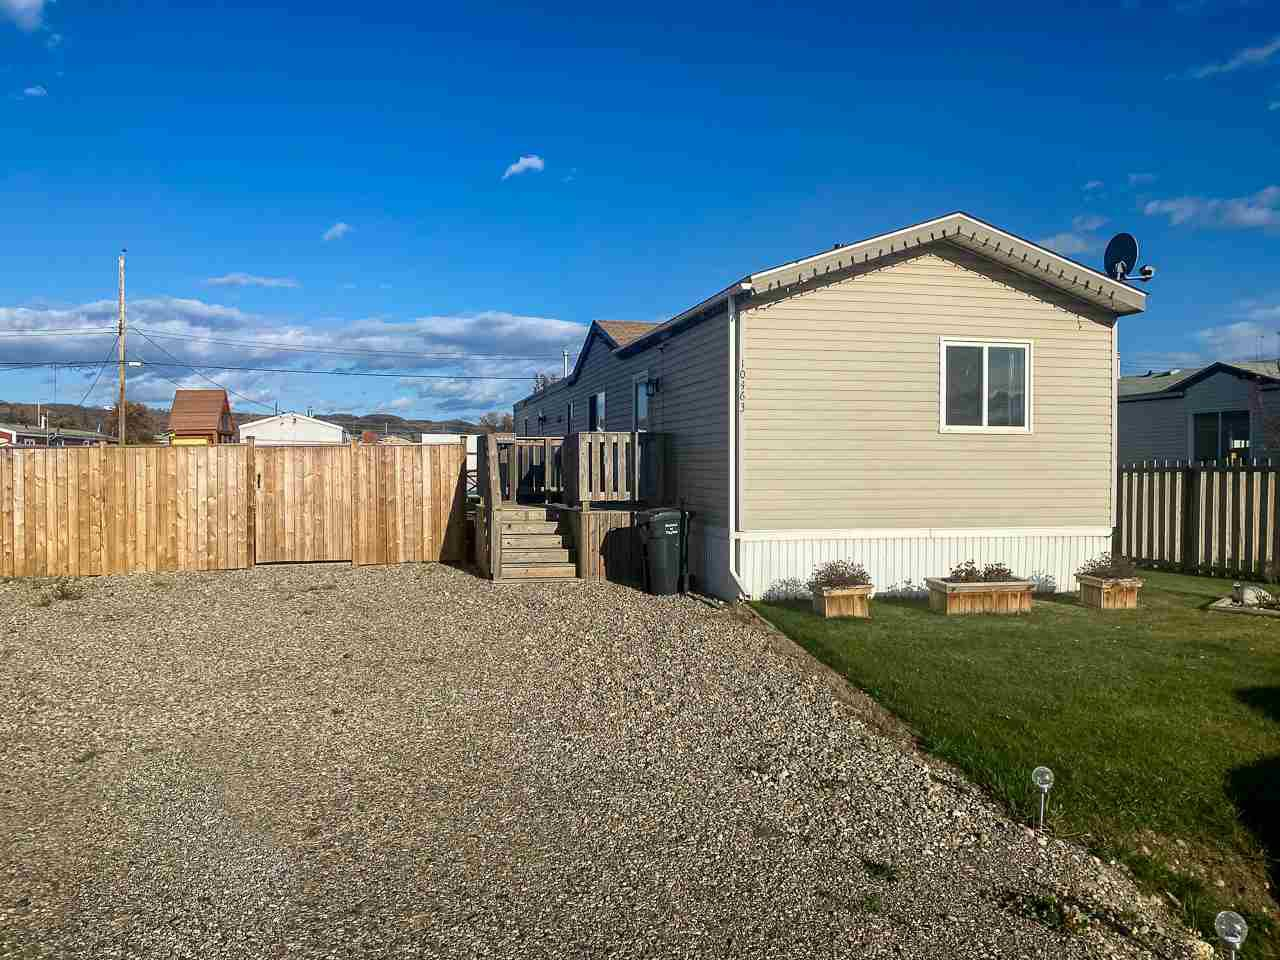 Main Photo: 10463 103 Street: Taylor Manufactured Home for sale (Fort St. John (Zone 60))  : MLS®# R2506617